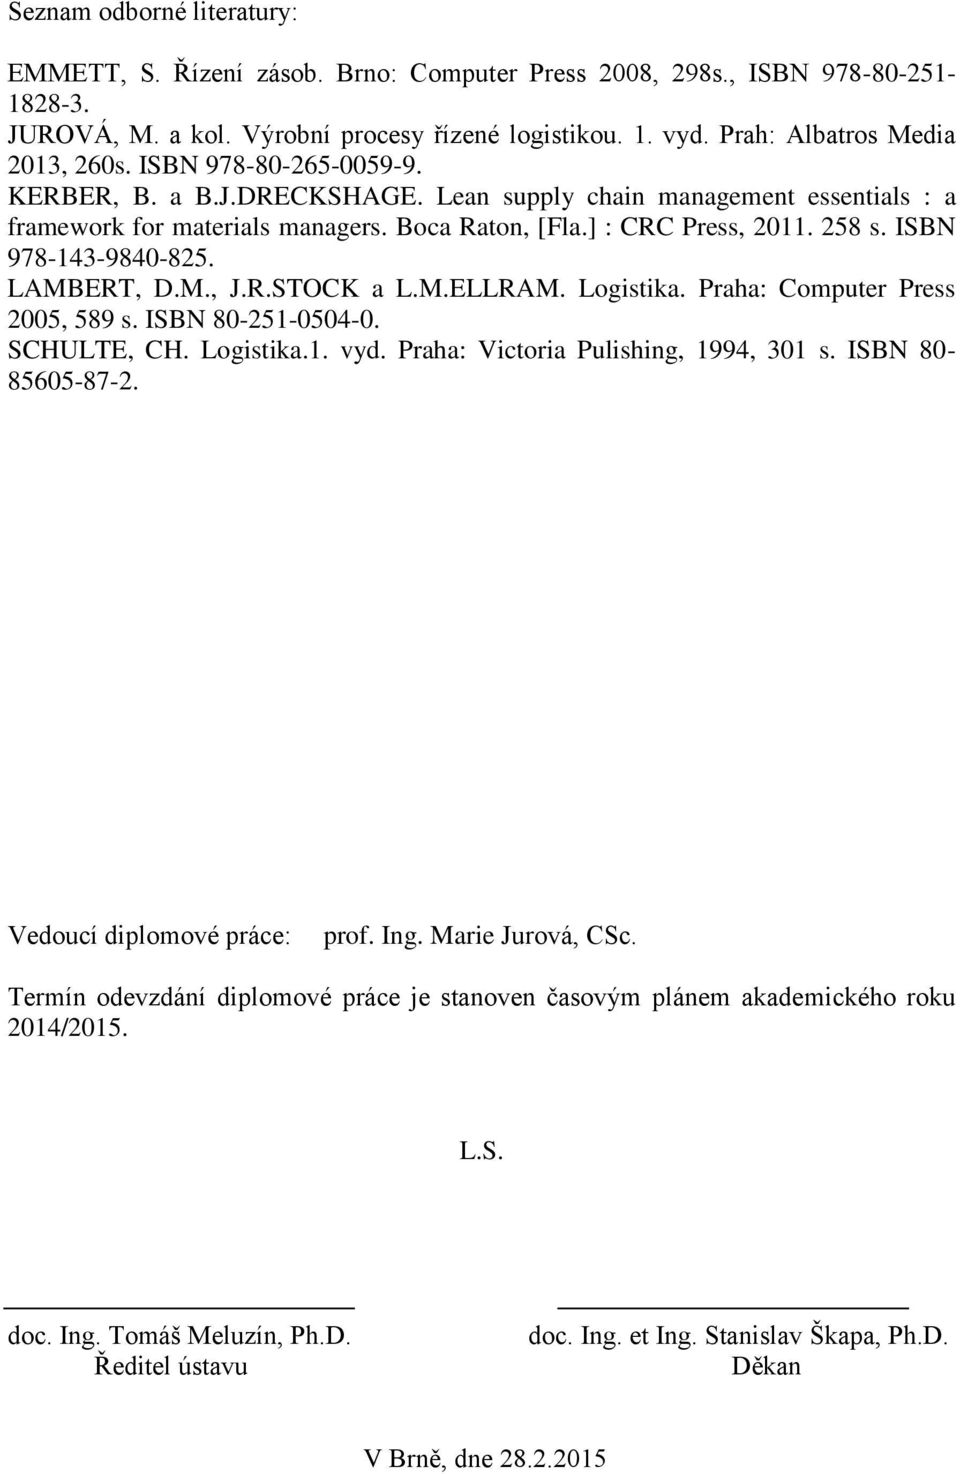 ] : CRC Press, 2011. 258 s. ISBN 978-143-9840-825. LAMBERT, D.M., J.R.STOCK a L.M.ELLRAM. Logistika. Praha: Computer Press 2005, 589 s. ISBN 80-251-0504-0. SCHULTE, CH. Logistika.1. vyd.